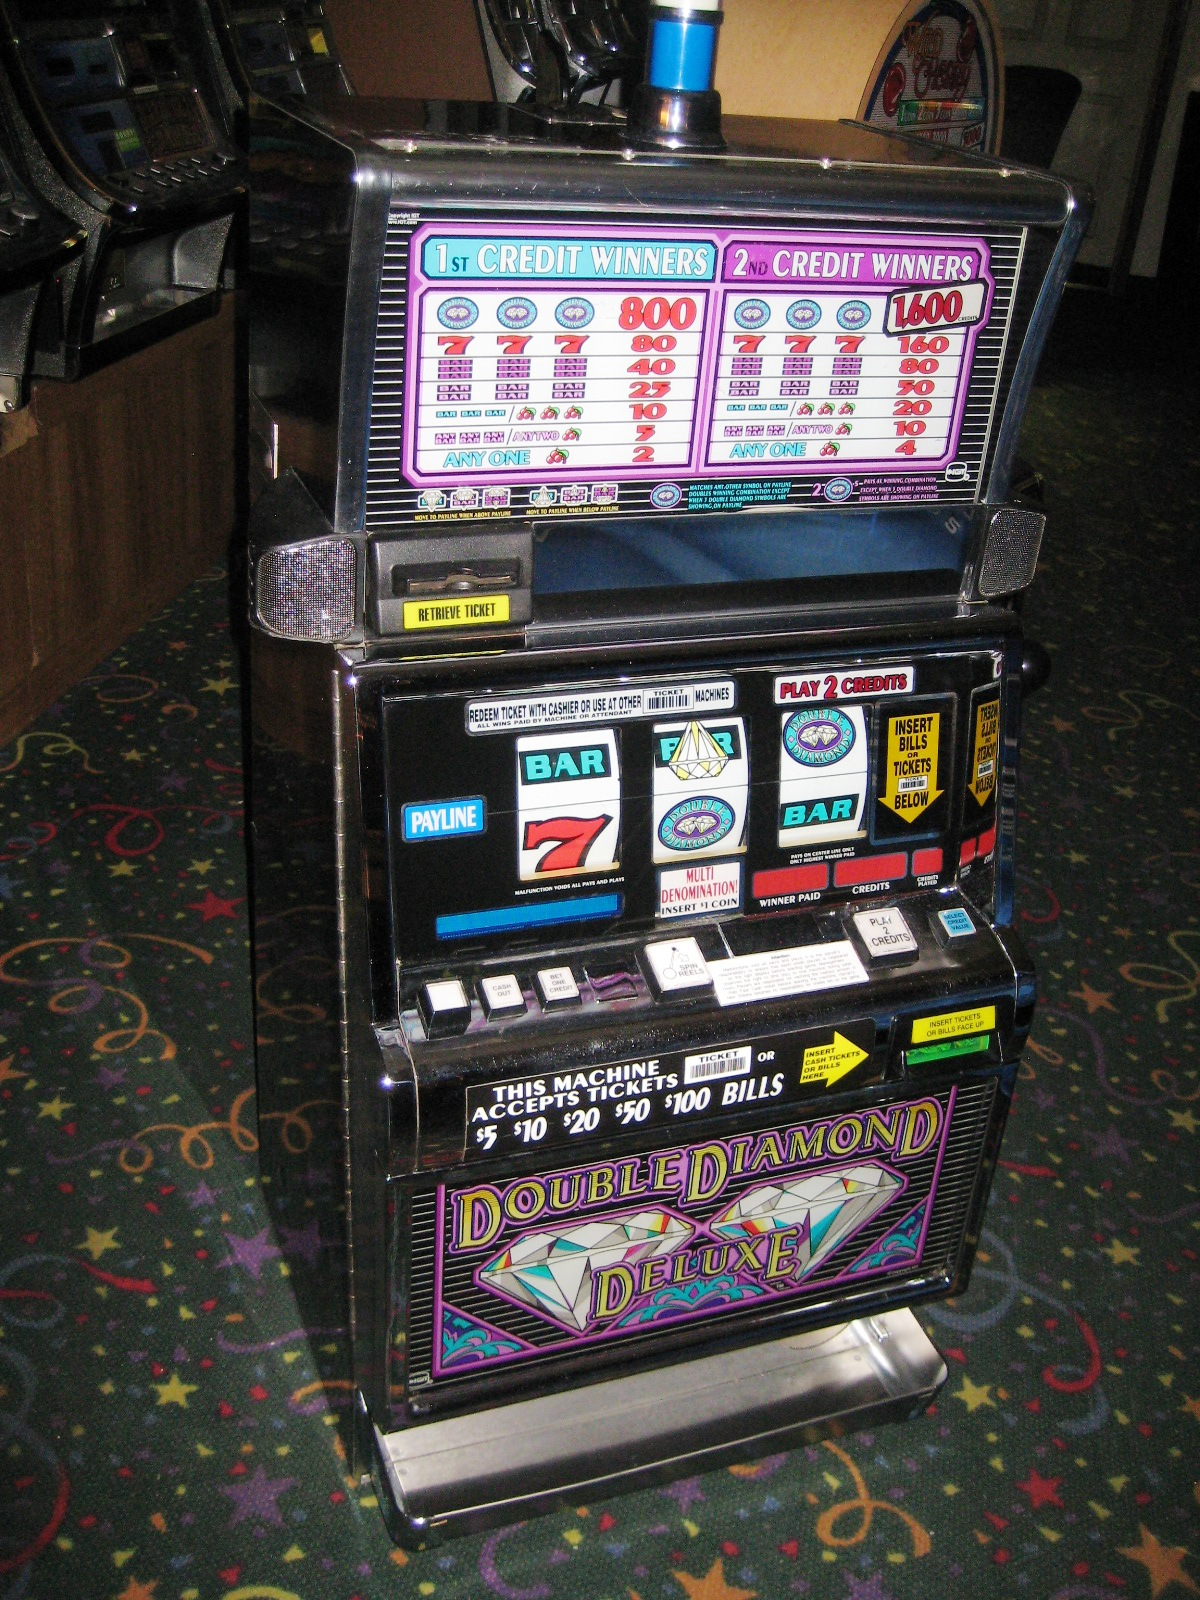 diamond deluxe slot machine